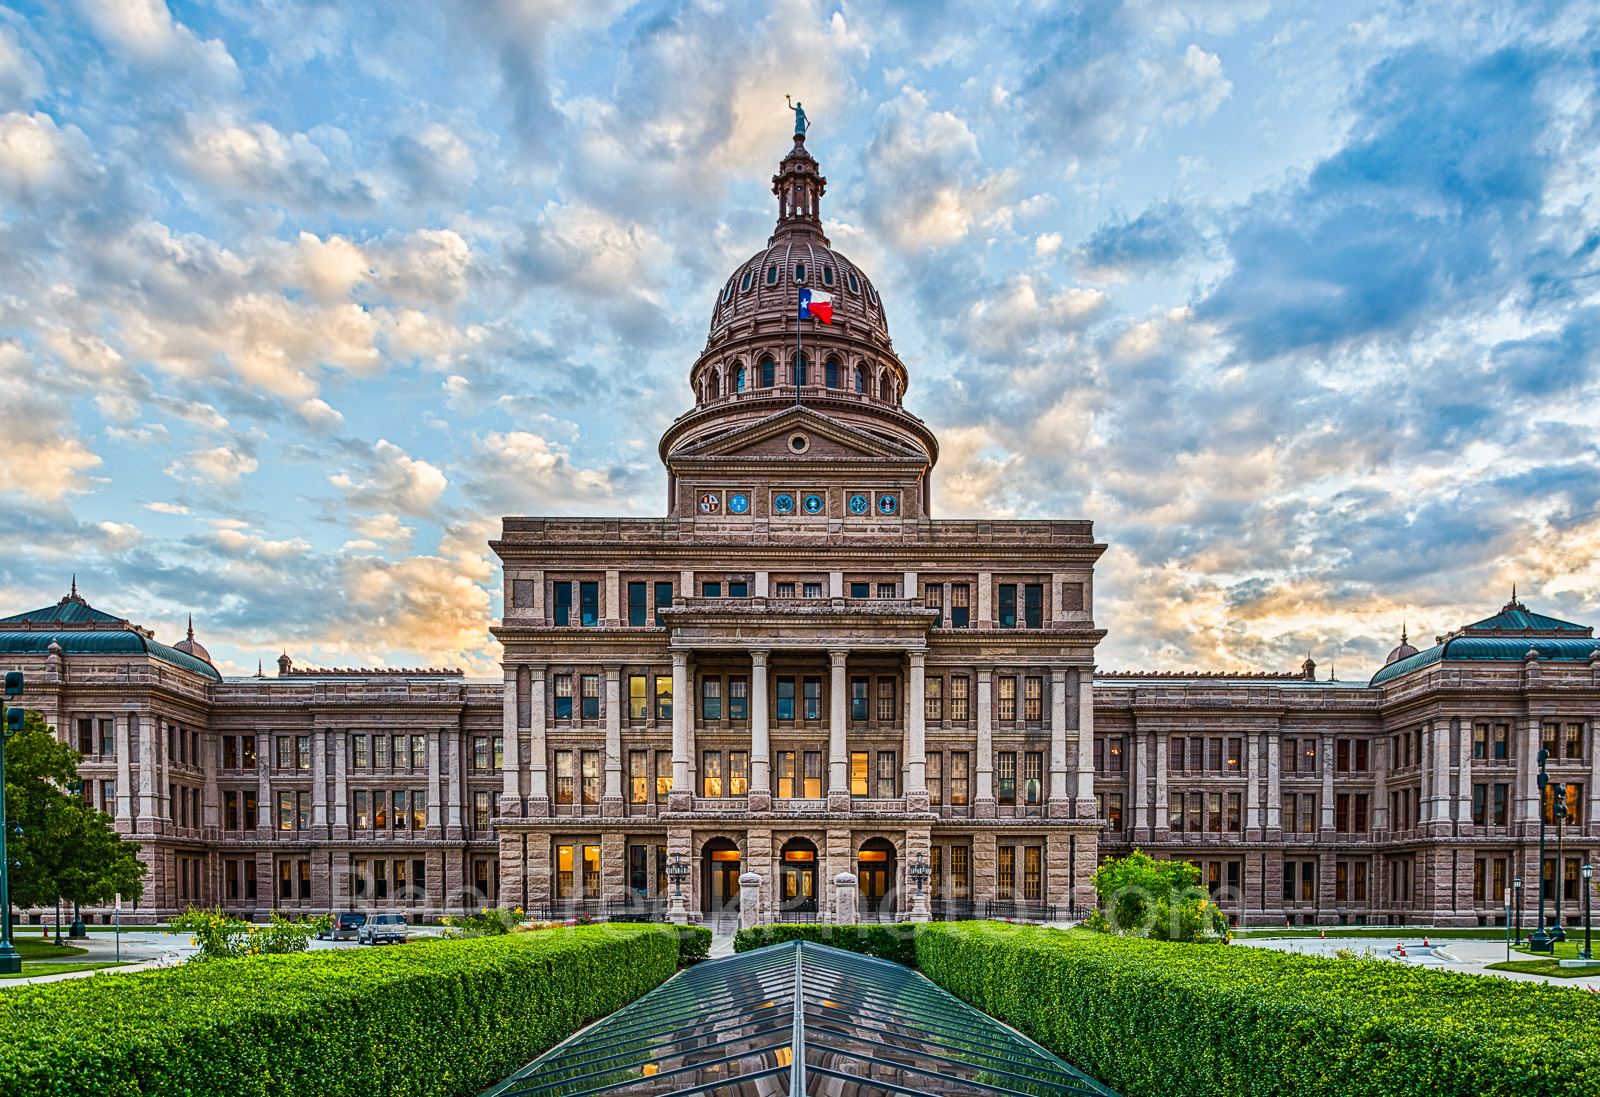 Texas Capitol in Austin- This is another view of the Texas Capitol in Austinasthe sun going down behind...